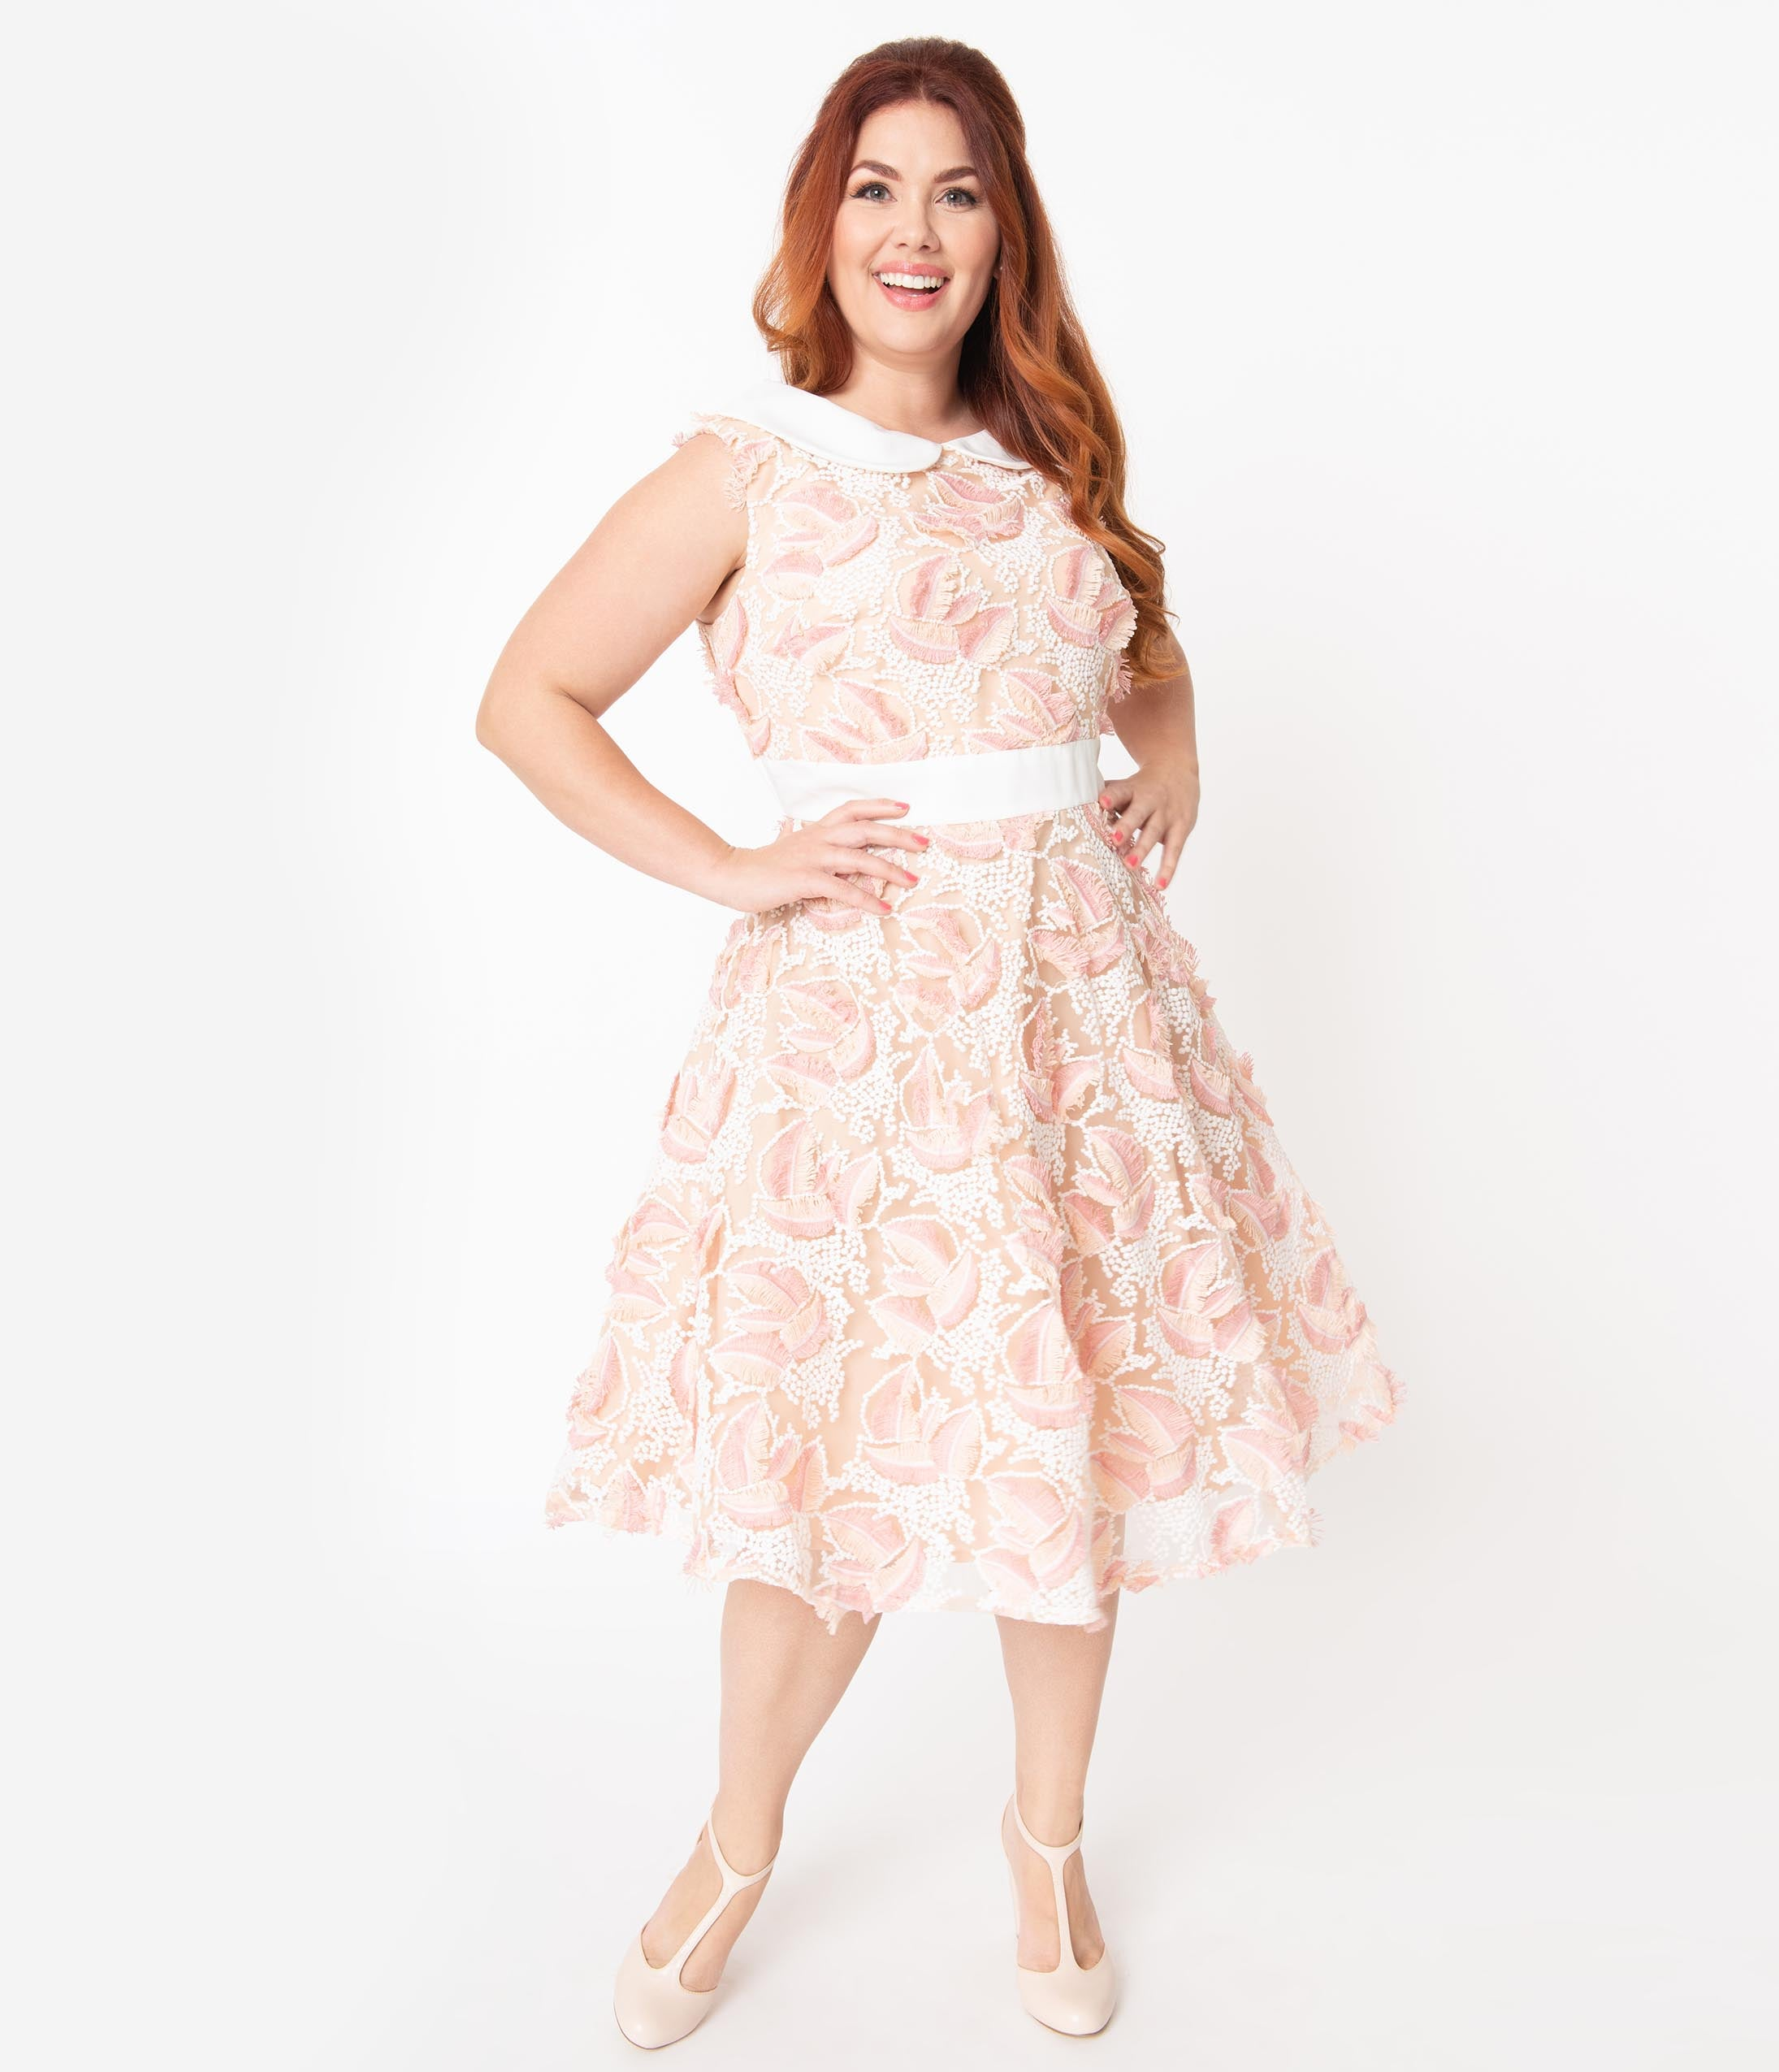 60s 70s Plus Size Dresses, Clothing, Costumes Plus Size Retro Beige  Ivory Embroidered Tulle Alice Swing Dress $108.00 AT vintagedancer.com